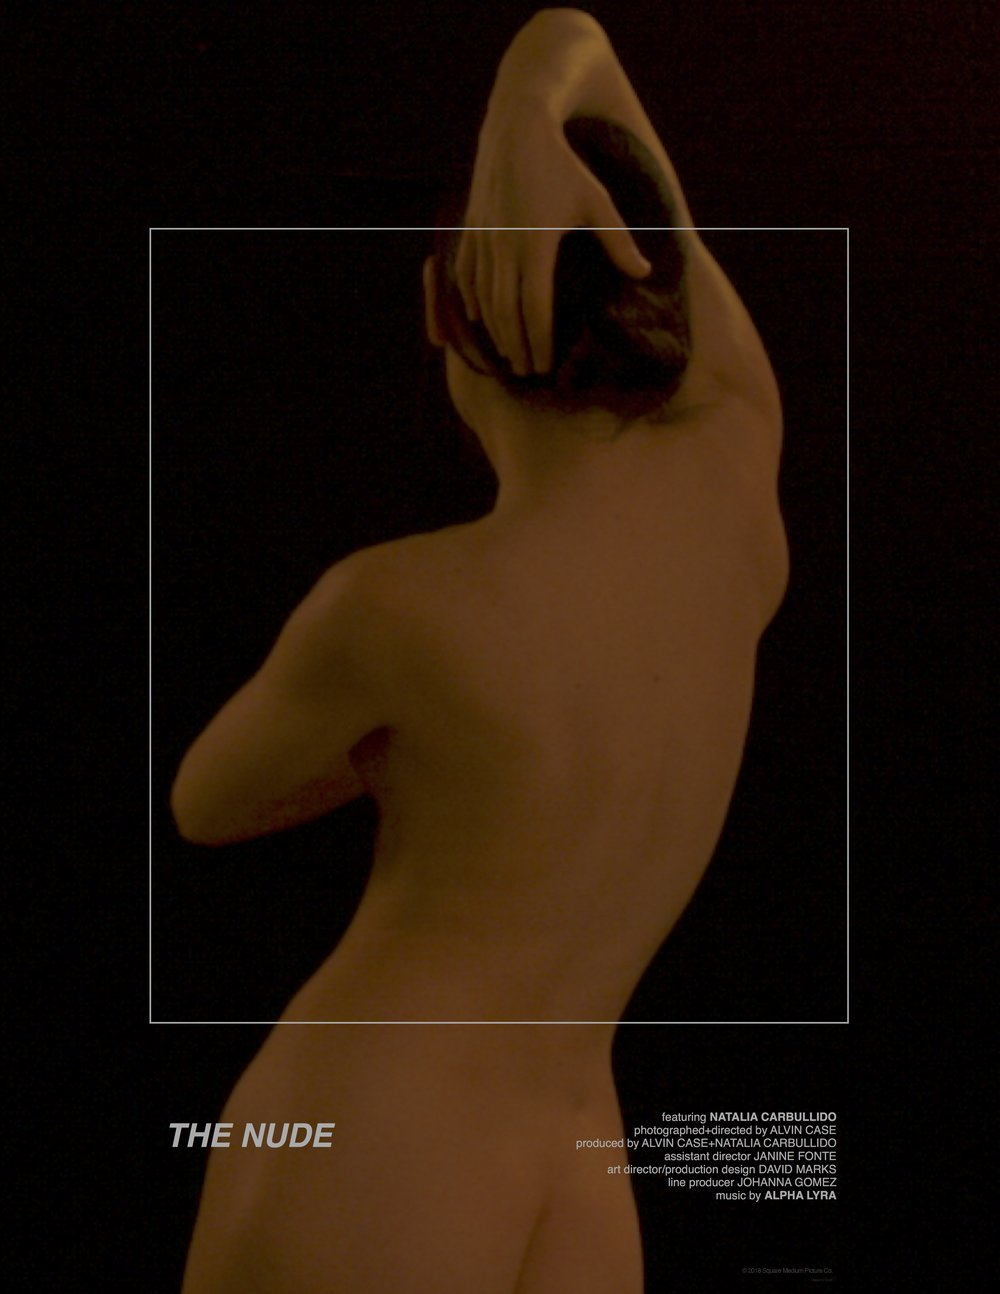 THE NUDE-Poster B.jpg